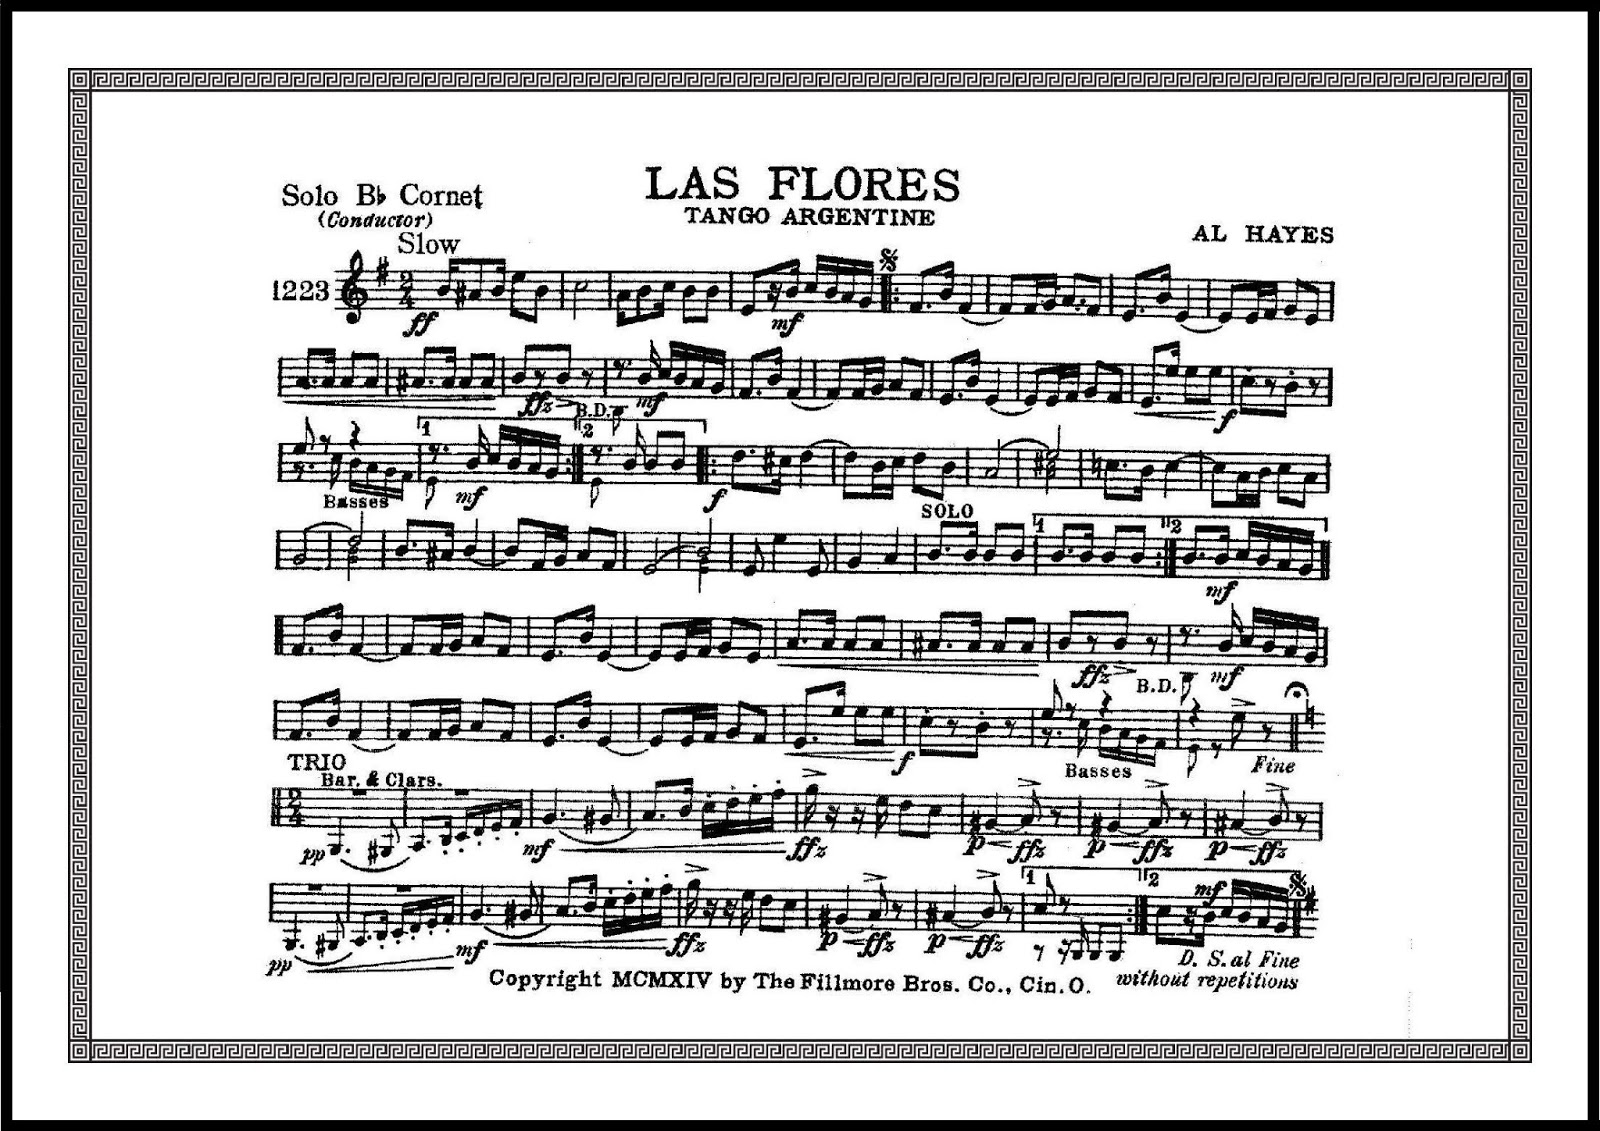 Details about marching band sheet music las flores tango argentine